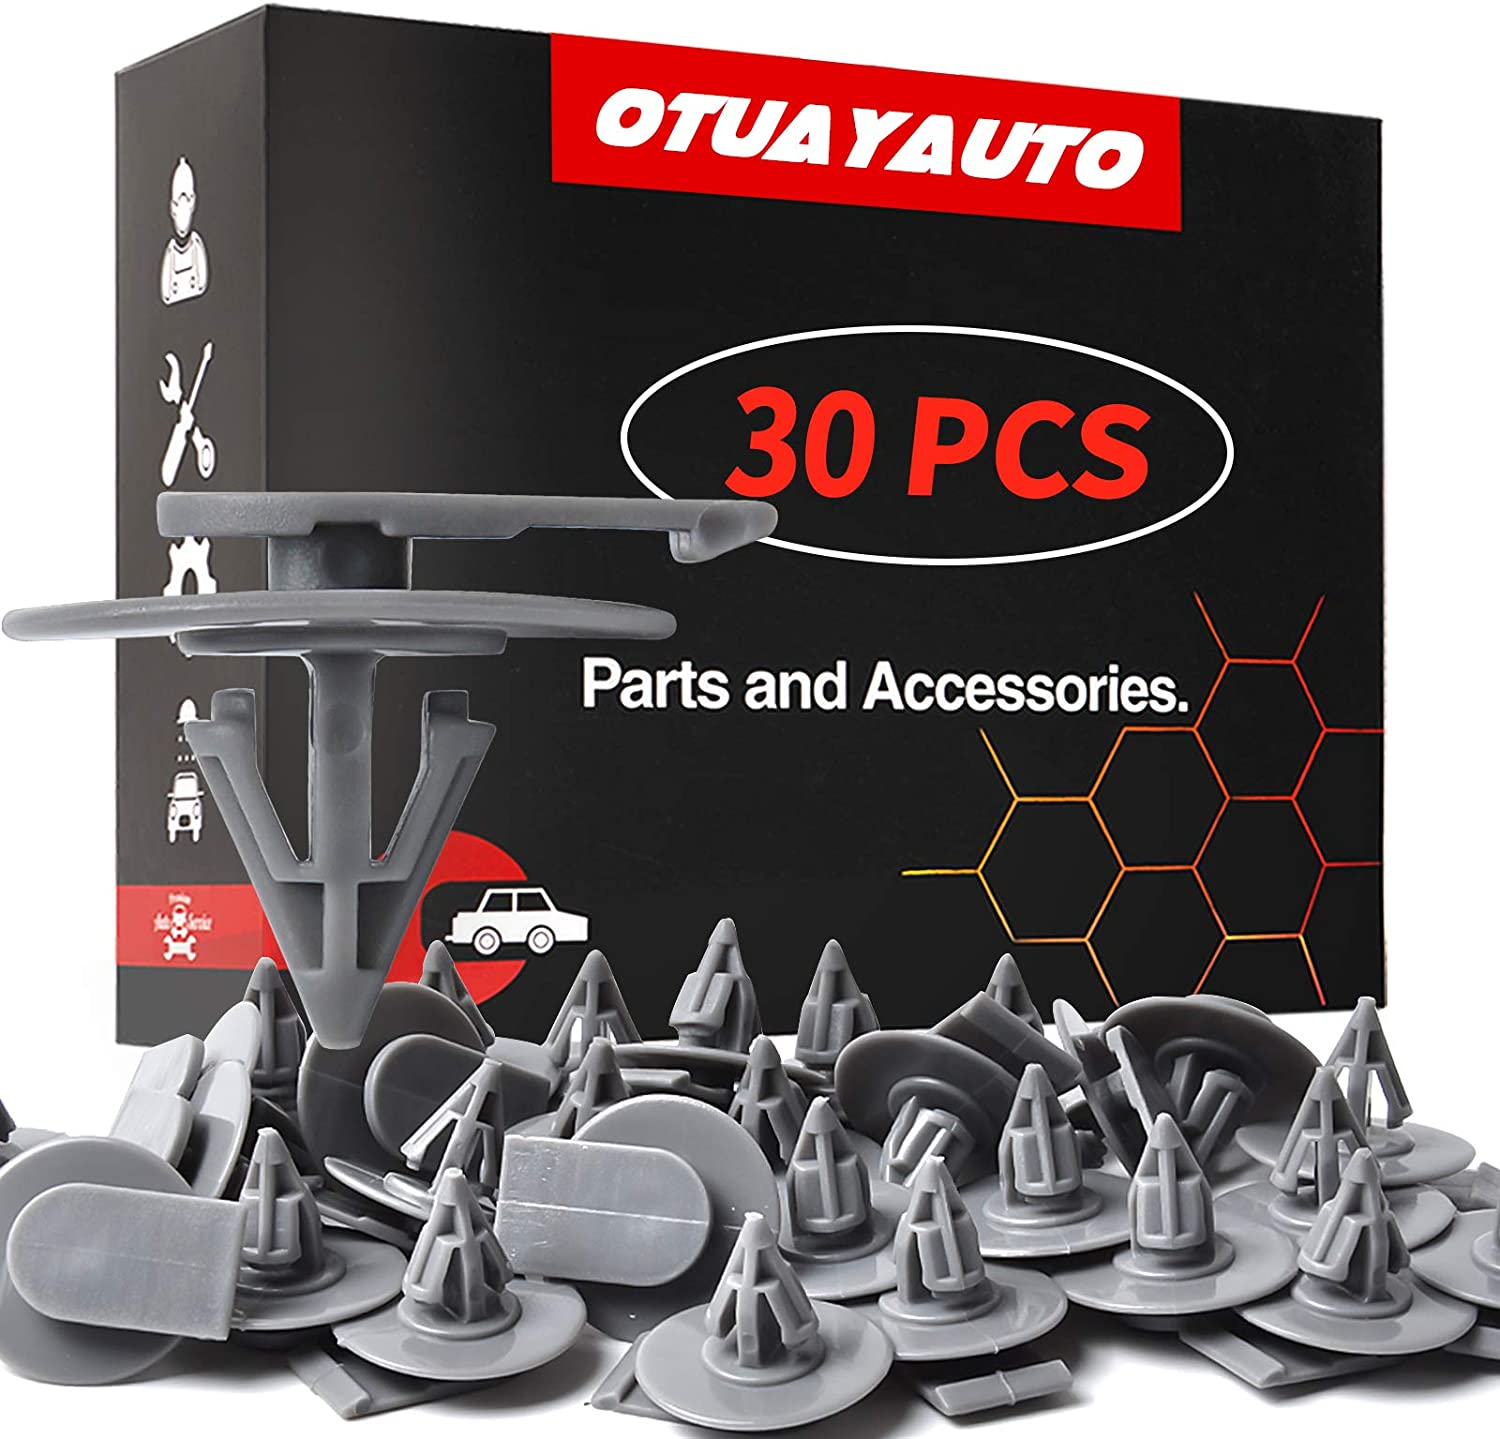 OTUAYAUTO 30PCS Wheel Arch Clips Replacement for Year-end gift Mini free - Cooper F